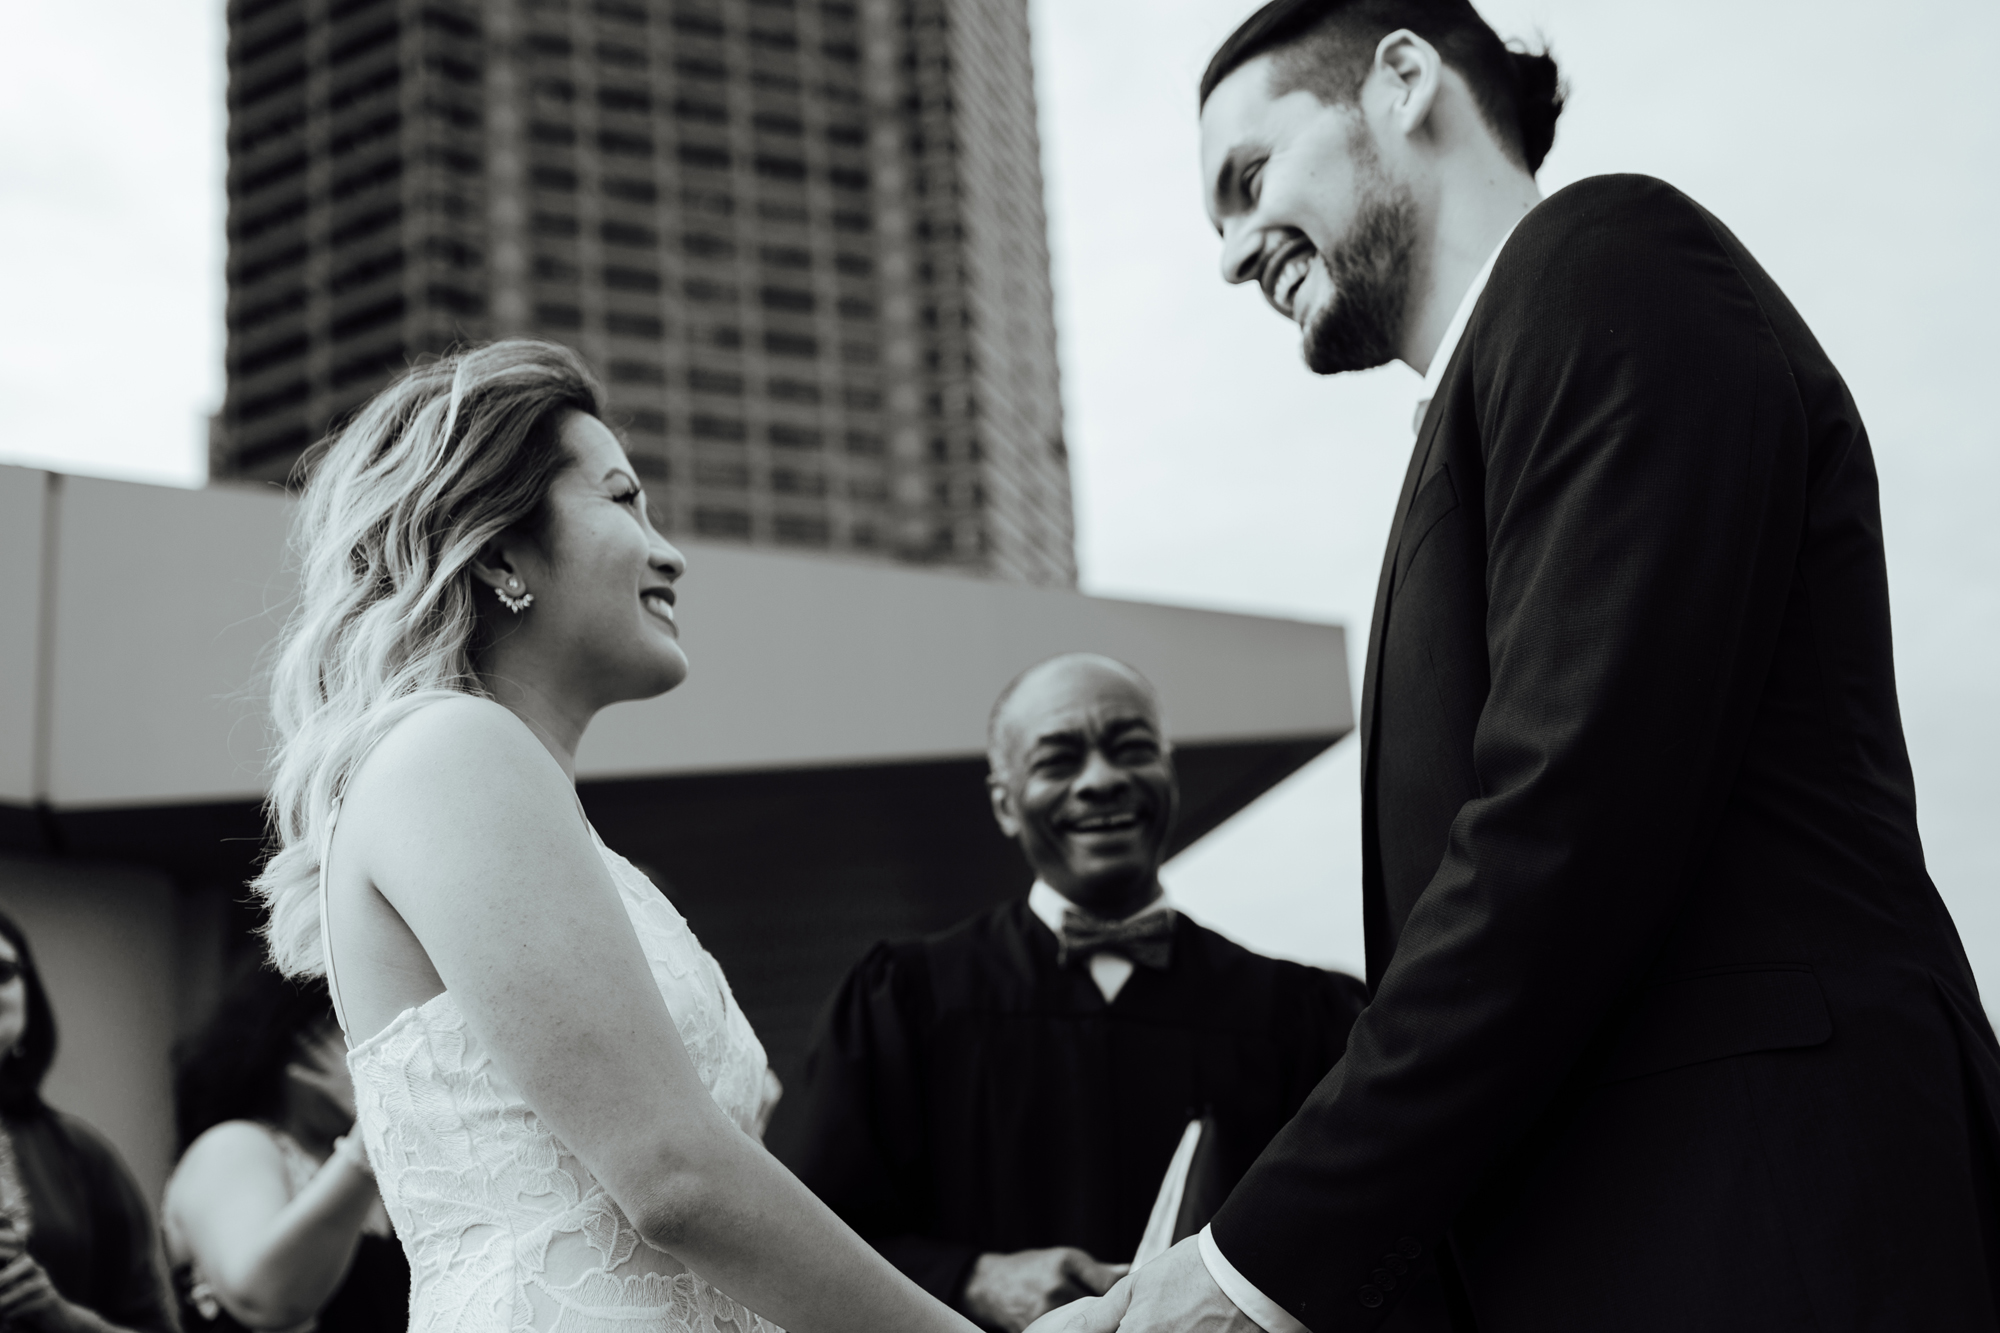 Seattle Courthouse Wedding Photos by Krista Welch00037.jpg